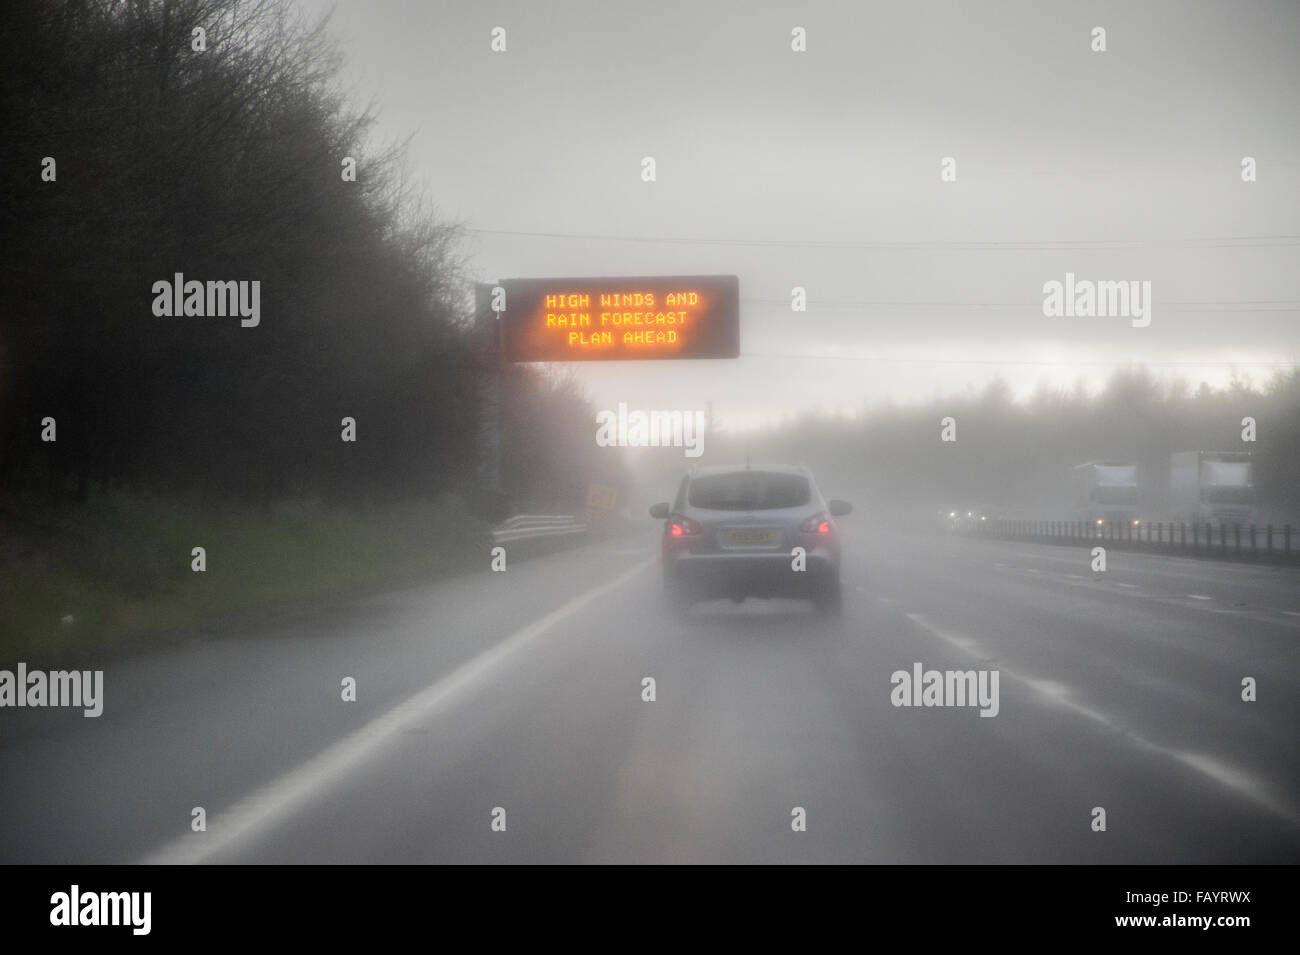 Smart motorway warning sign in rain for 'High winds and rain forecast - plan ahead' - Stock Image